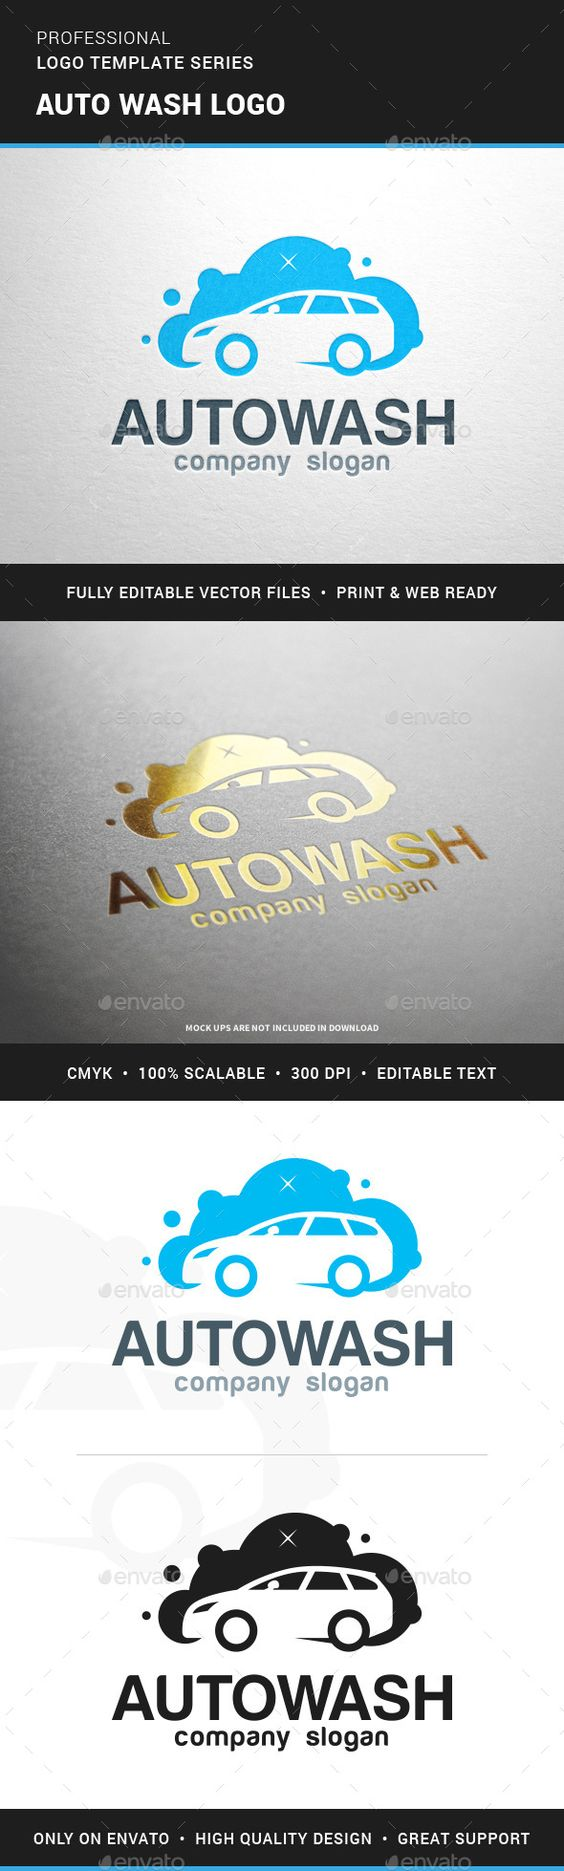 Auto Wash Logo Template